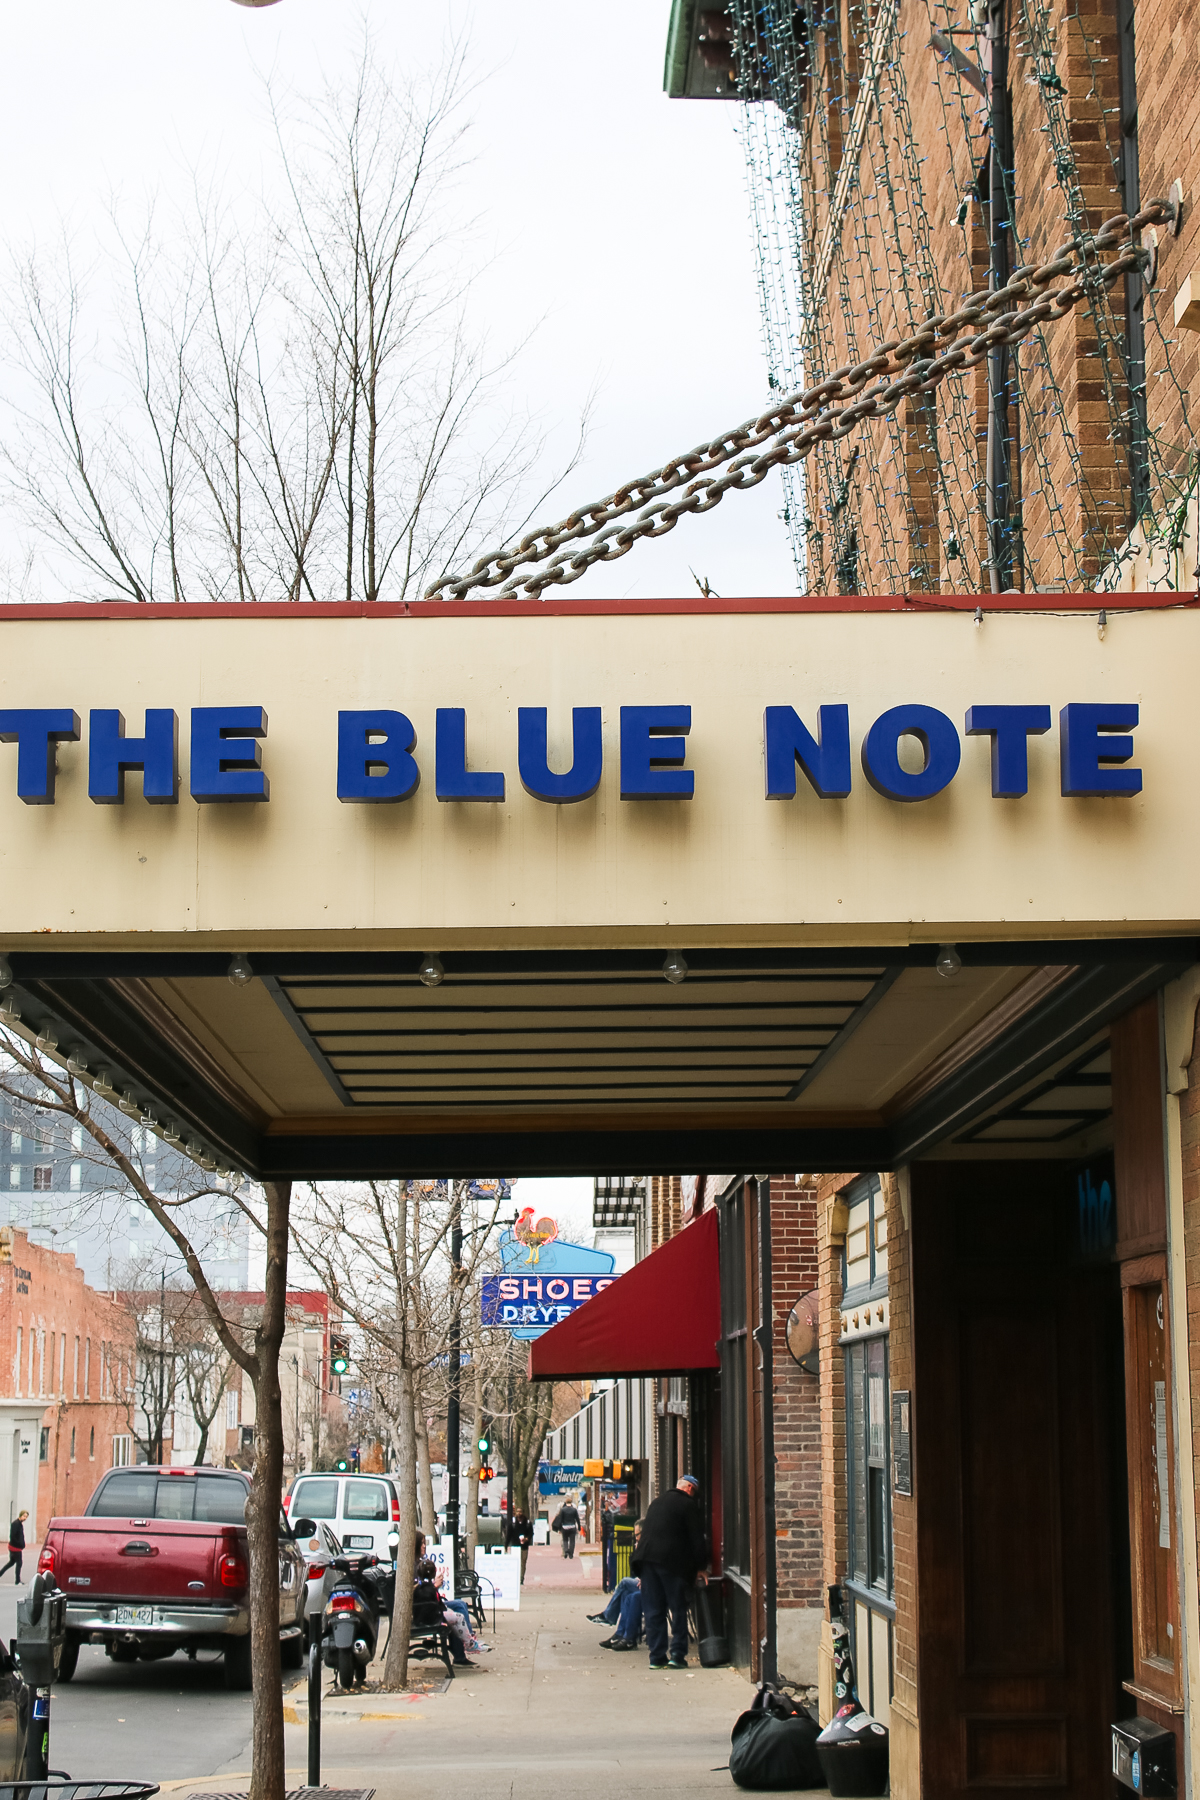 Photo of the The Blue Note in Columbia, Missouri (Number 4 of 10 romantic things to do in Missouri by Florida turned Missouri blogger Stephanie Ziajka from Diary of a Debutante)